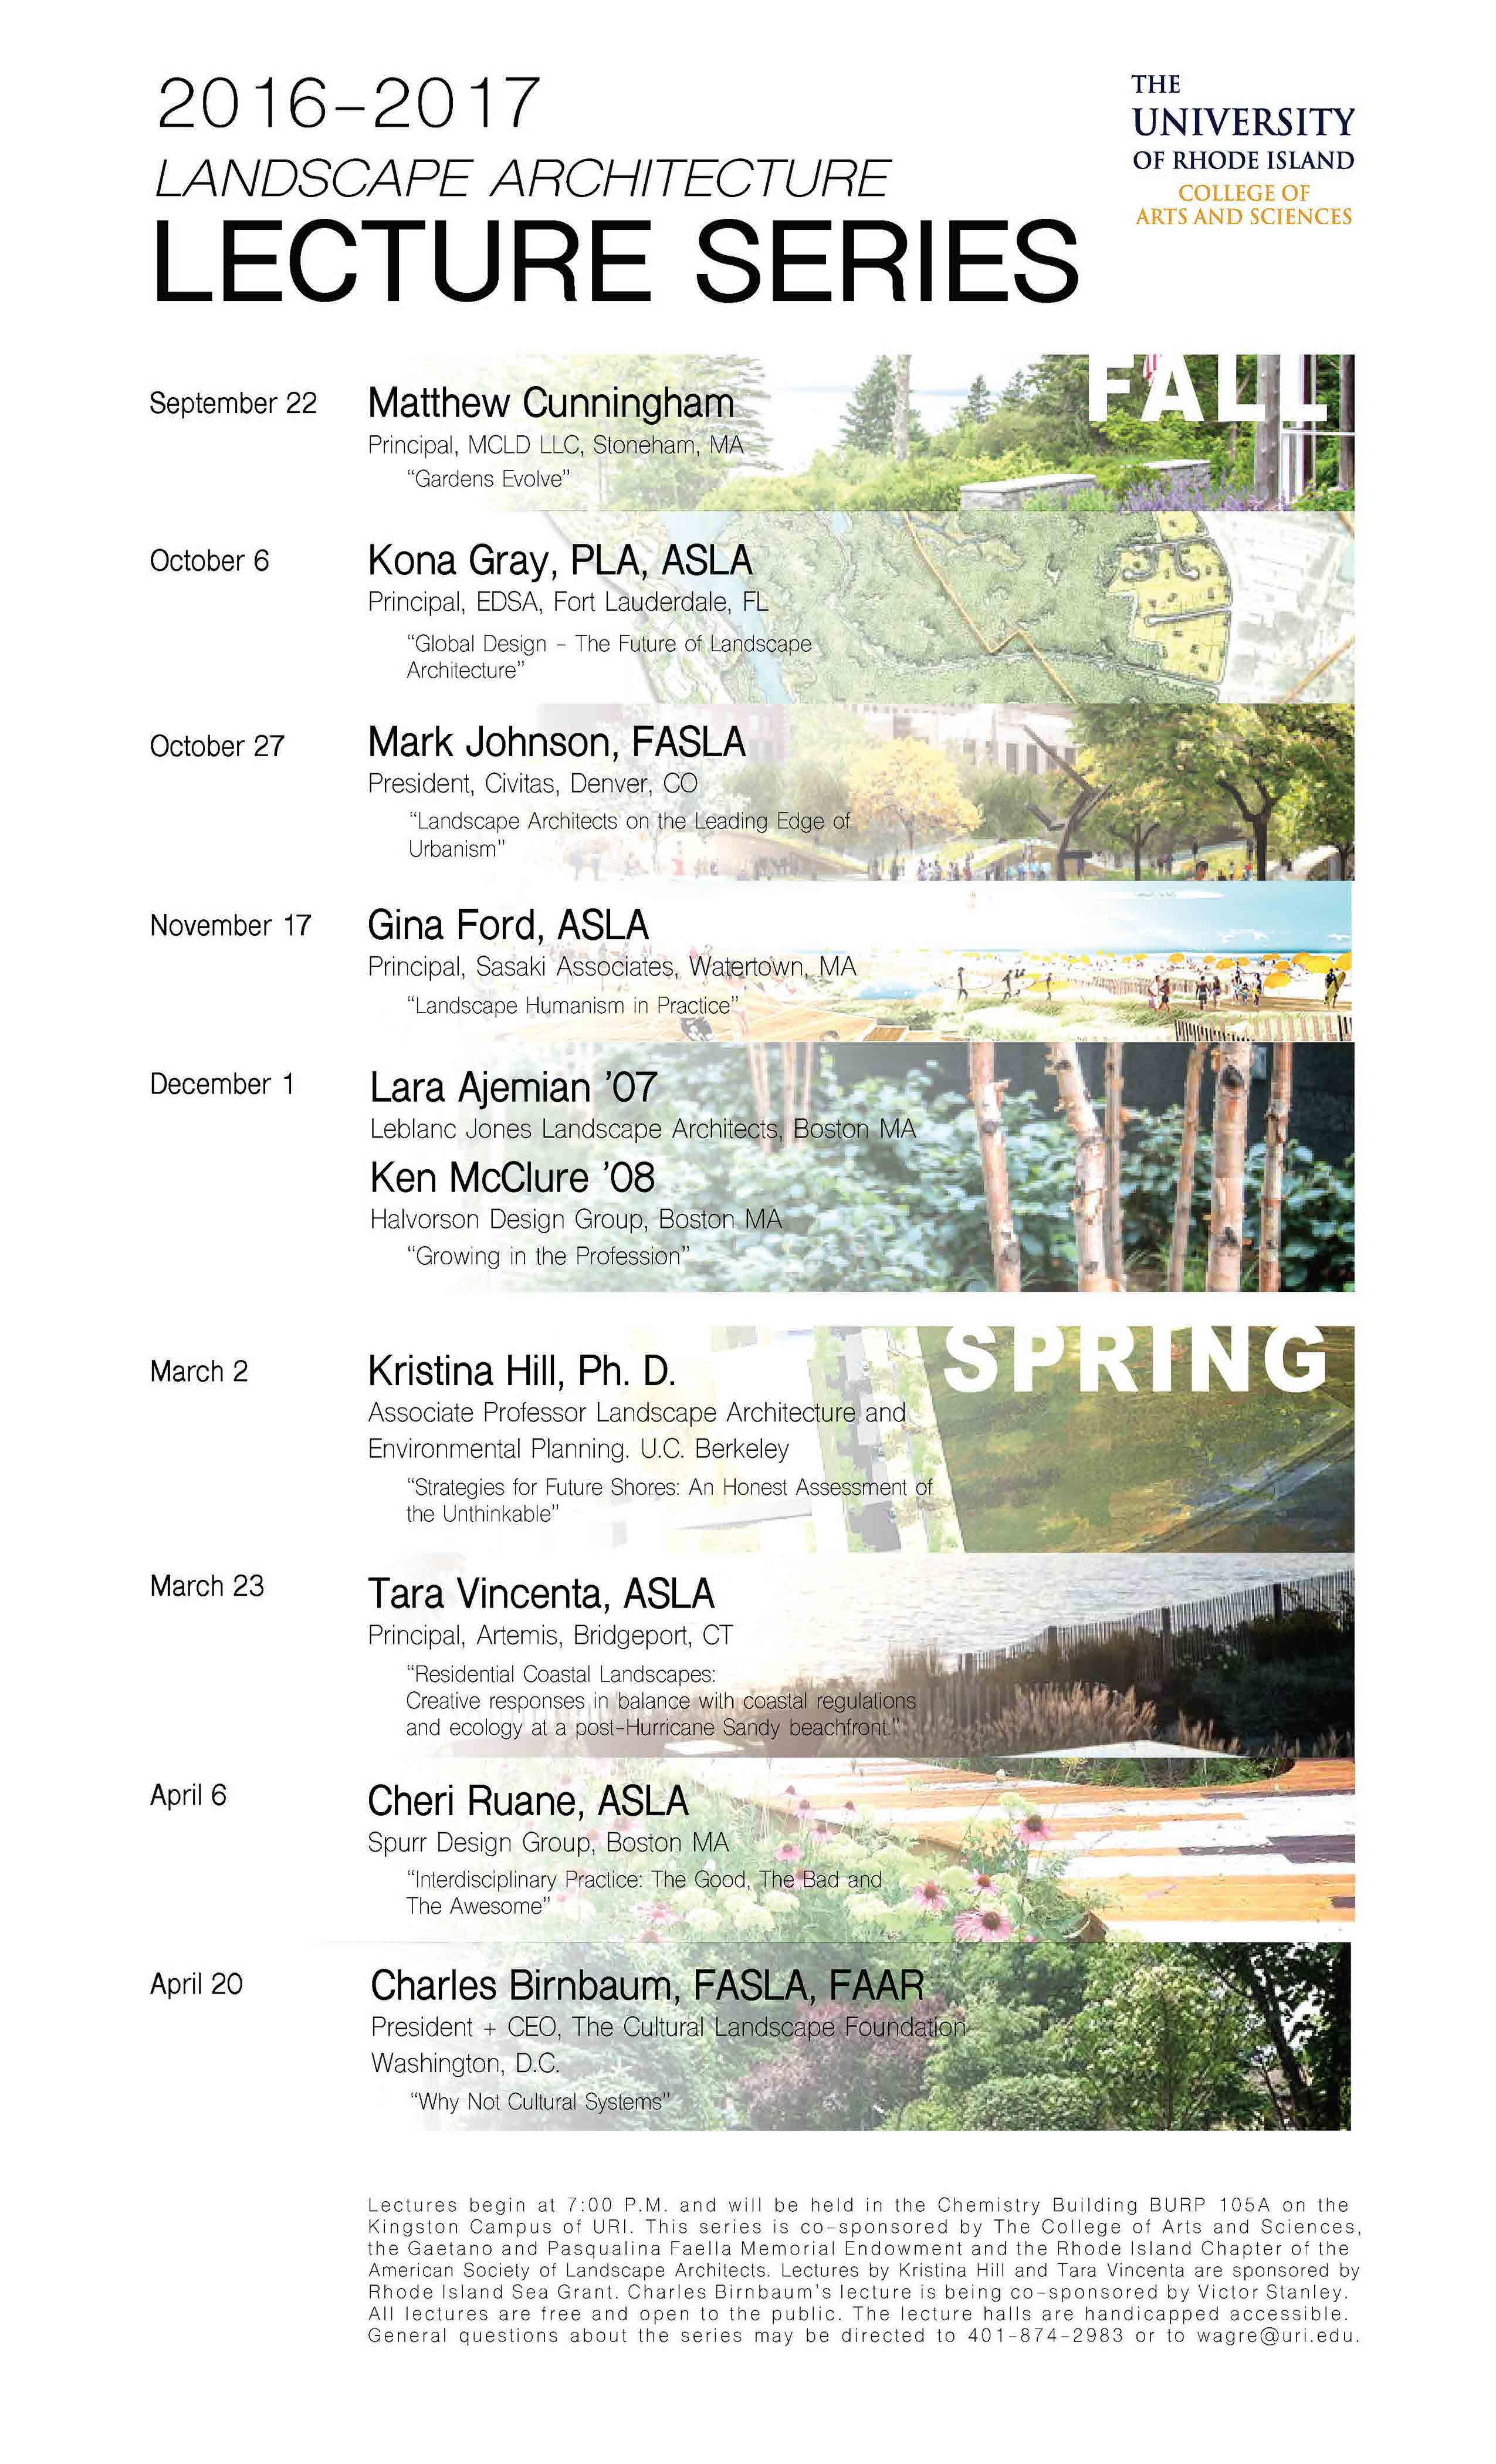 URI Landscape Architecture Lectures 2016 2017 | Rhode Island Chapter Of The  American Society Of Landscape Architects